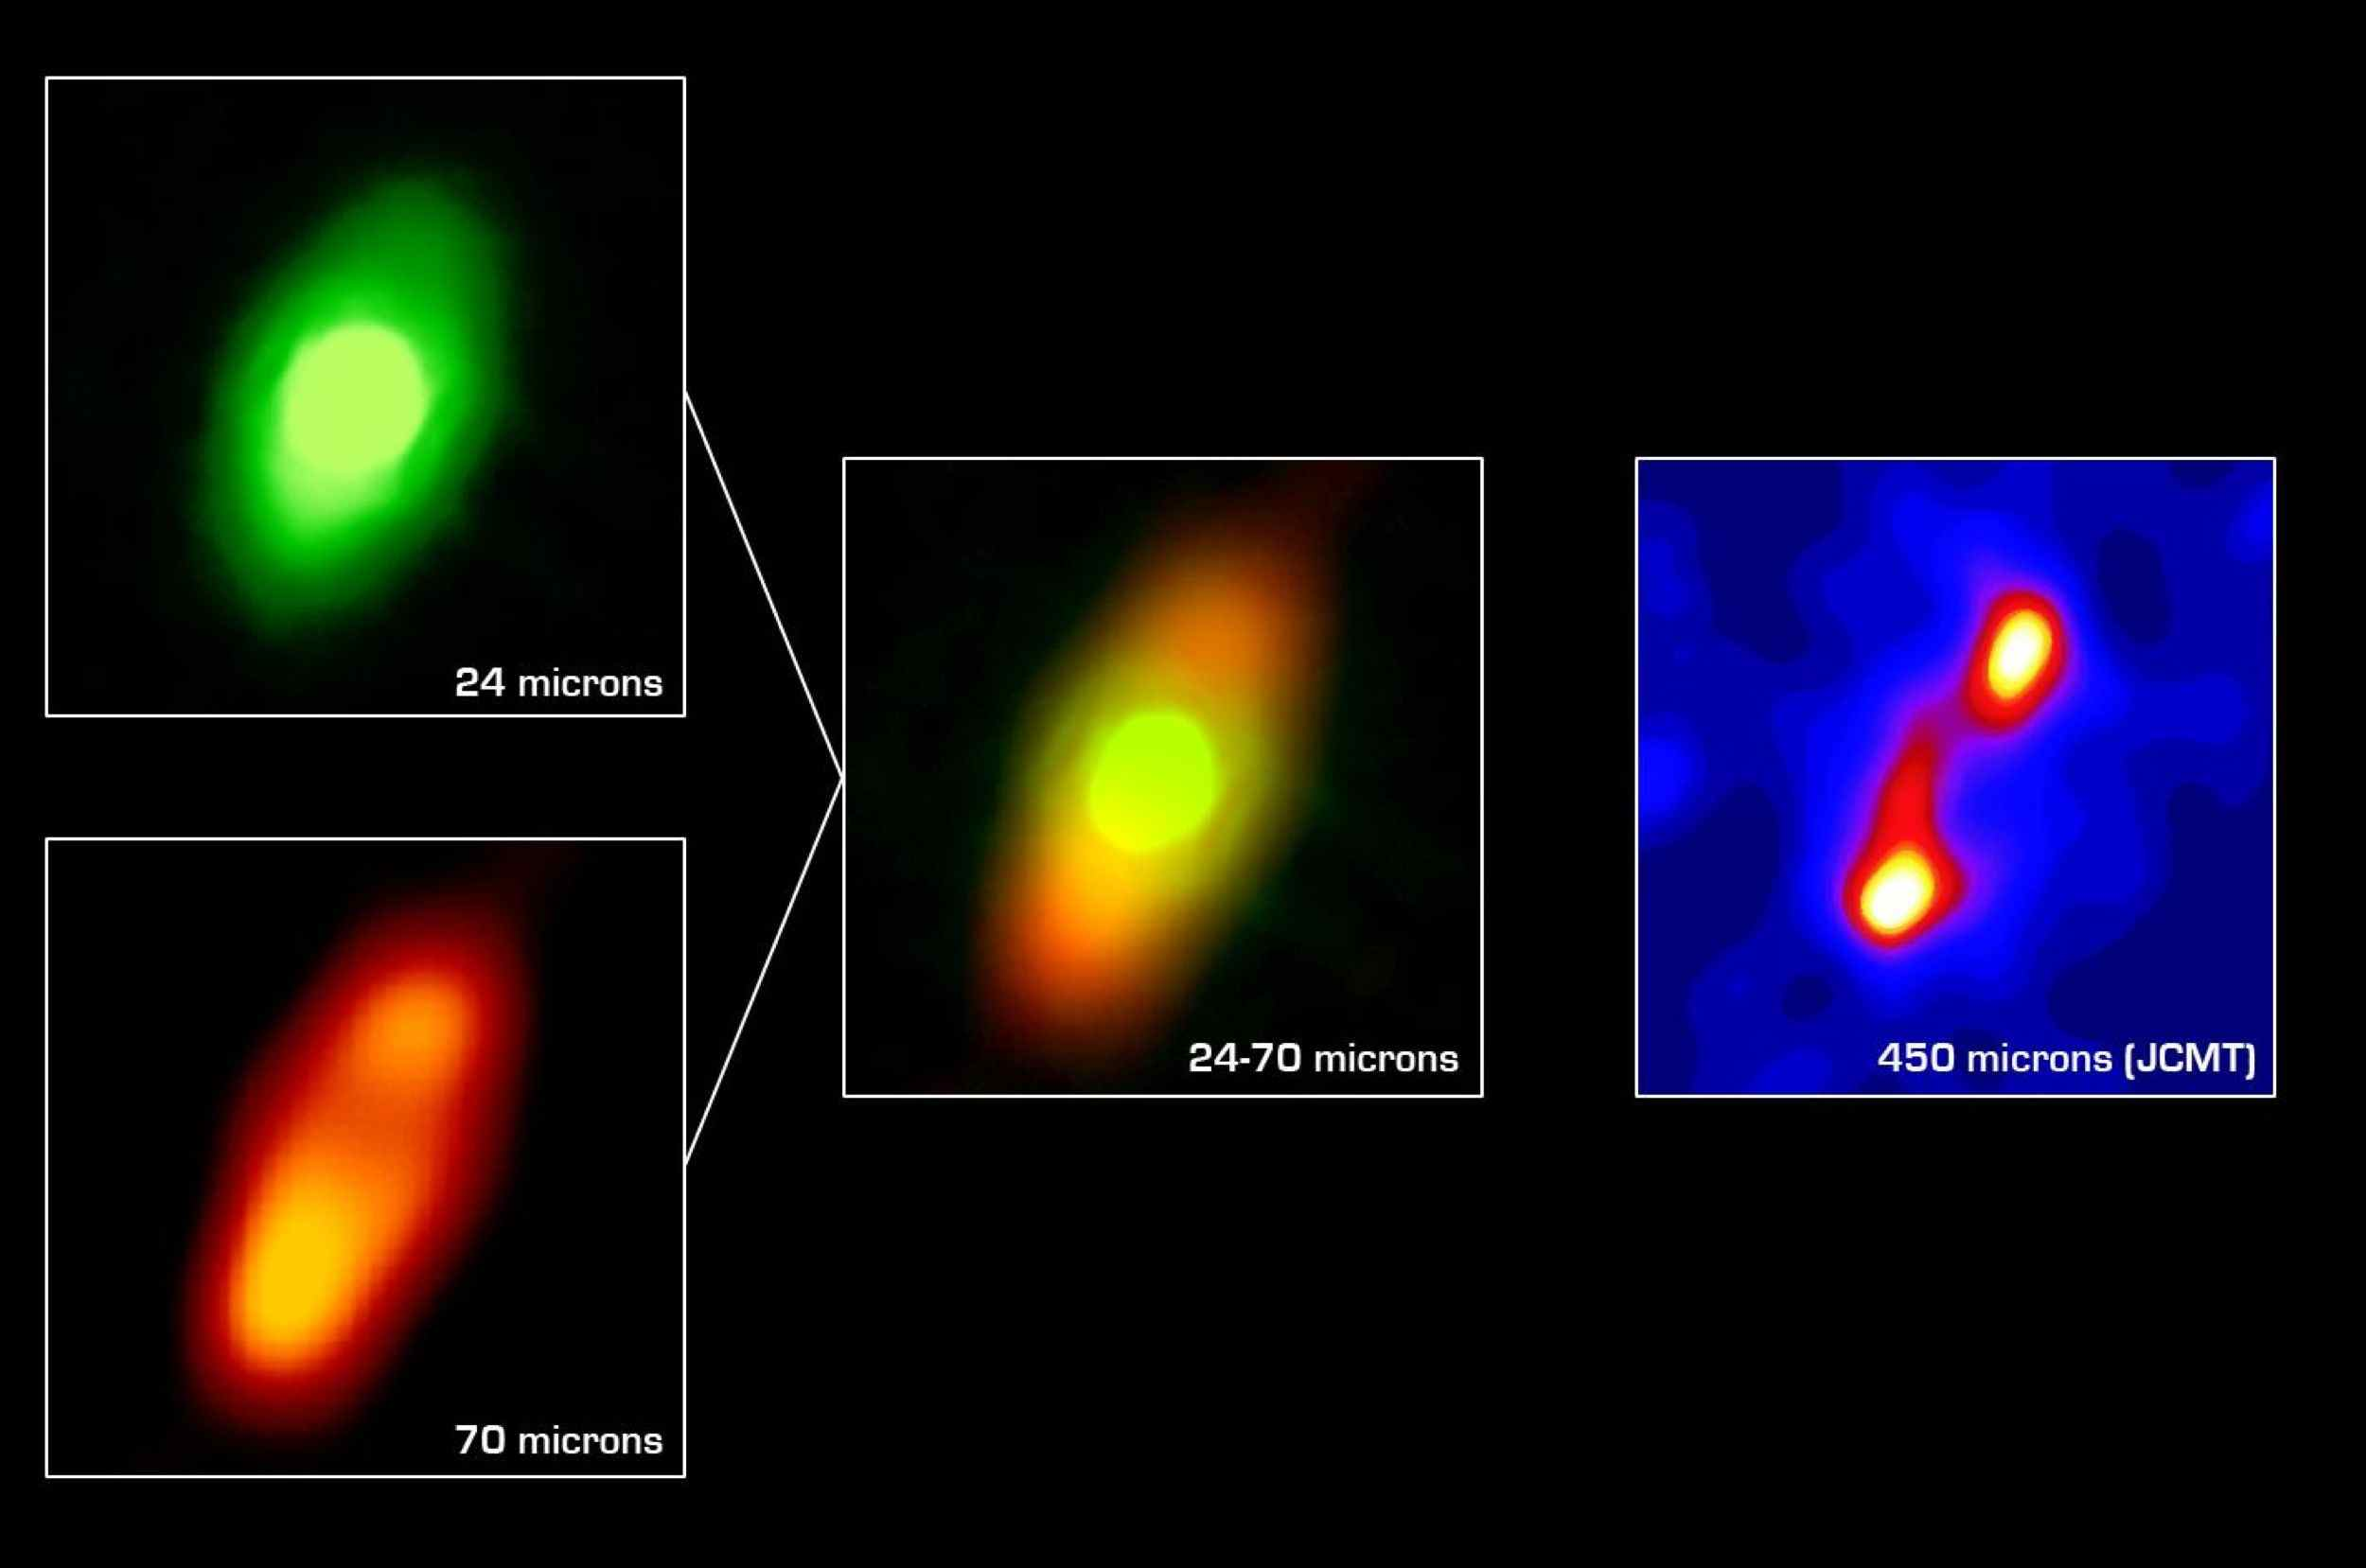 NASA Spitzer Space Telescope has obtained the first infrared images of the dust disc surrounding Fomalhaut, the 18th brightest star in the sky.